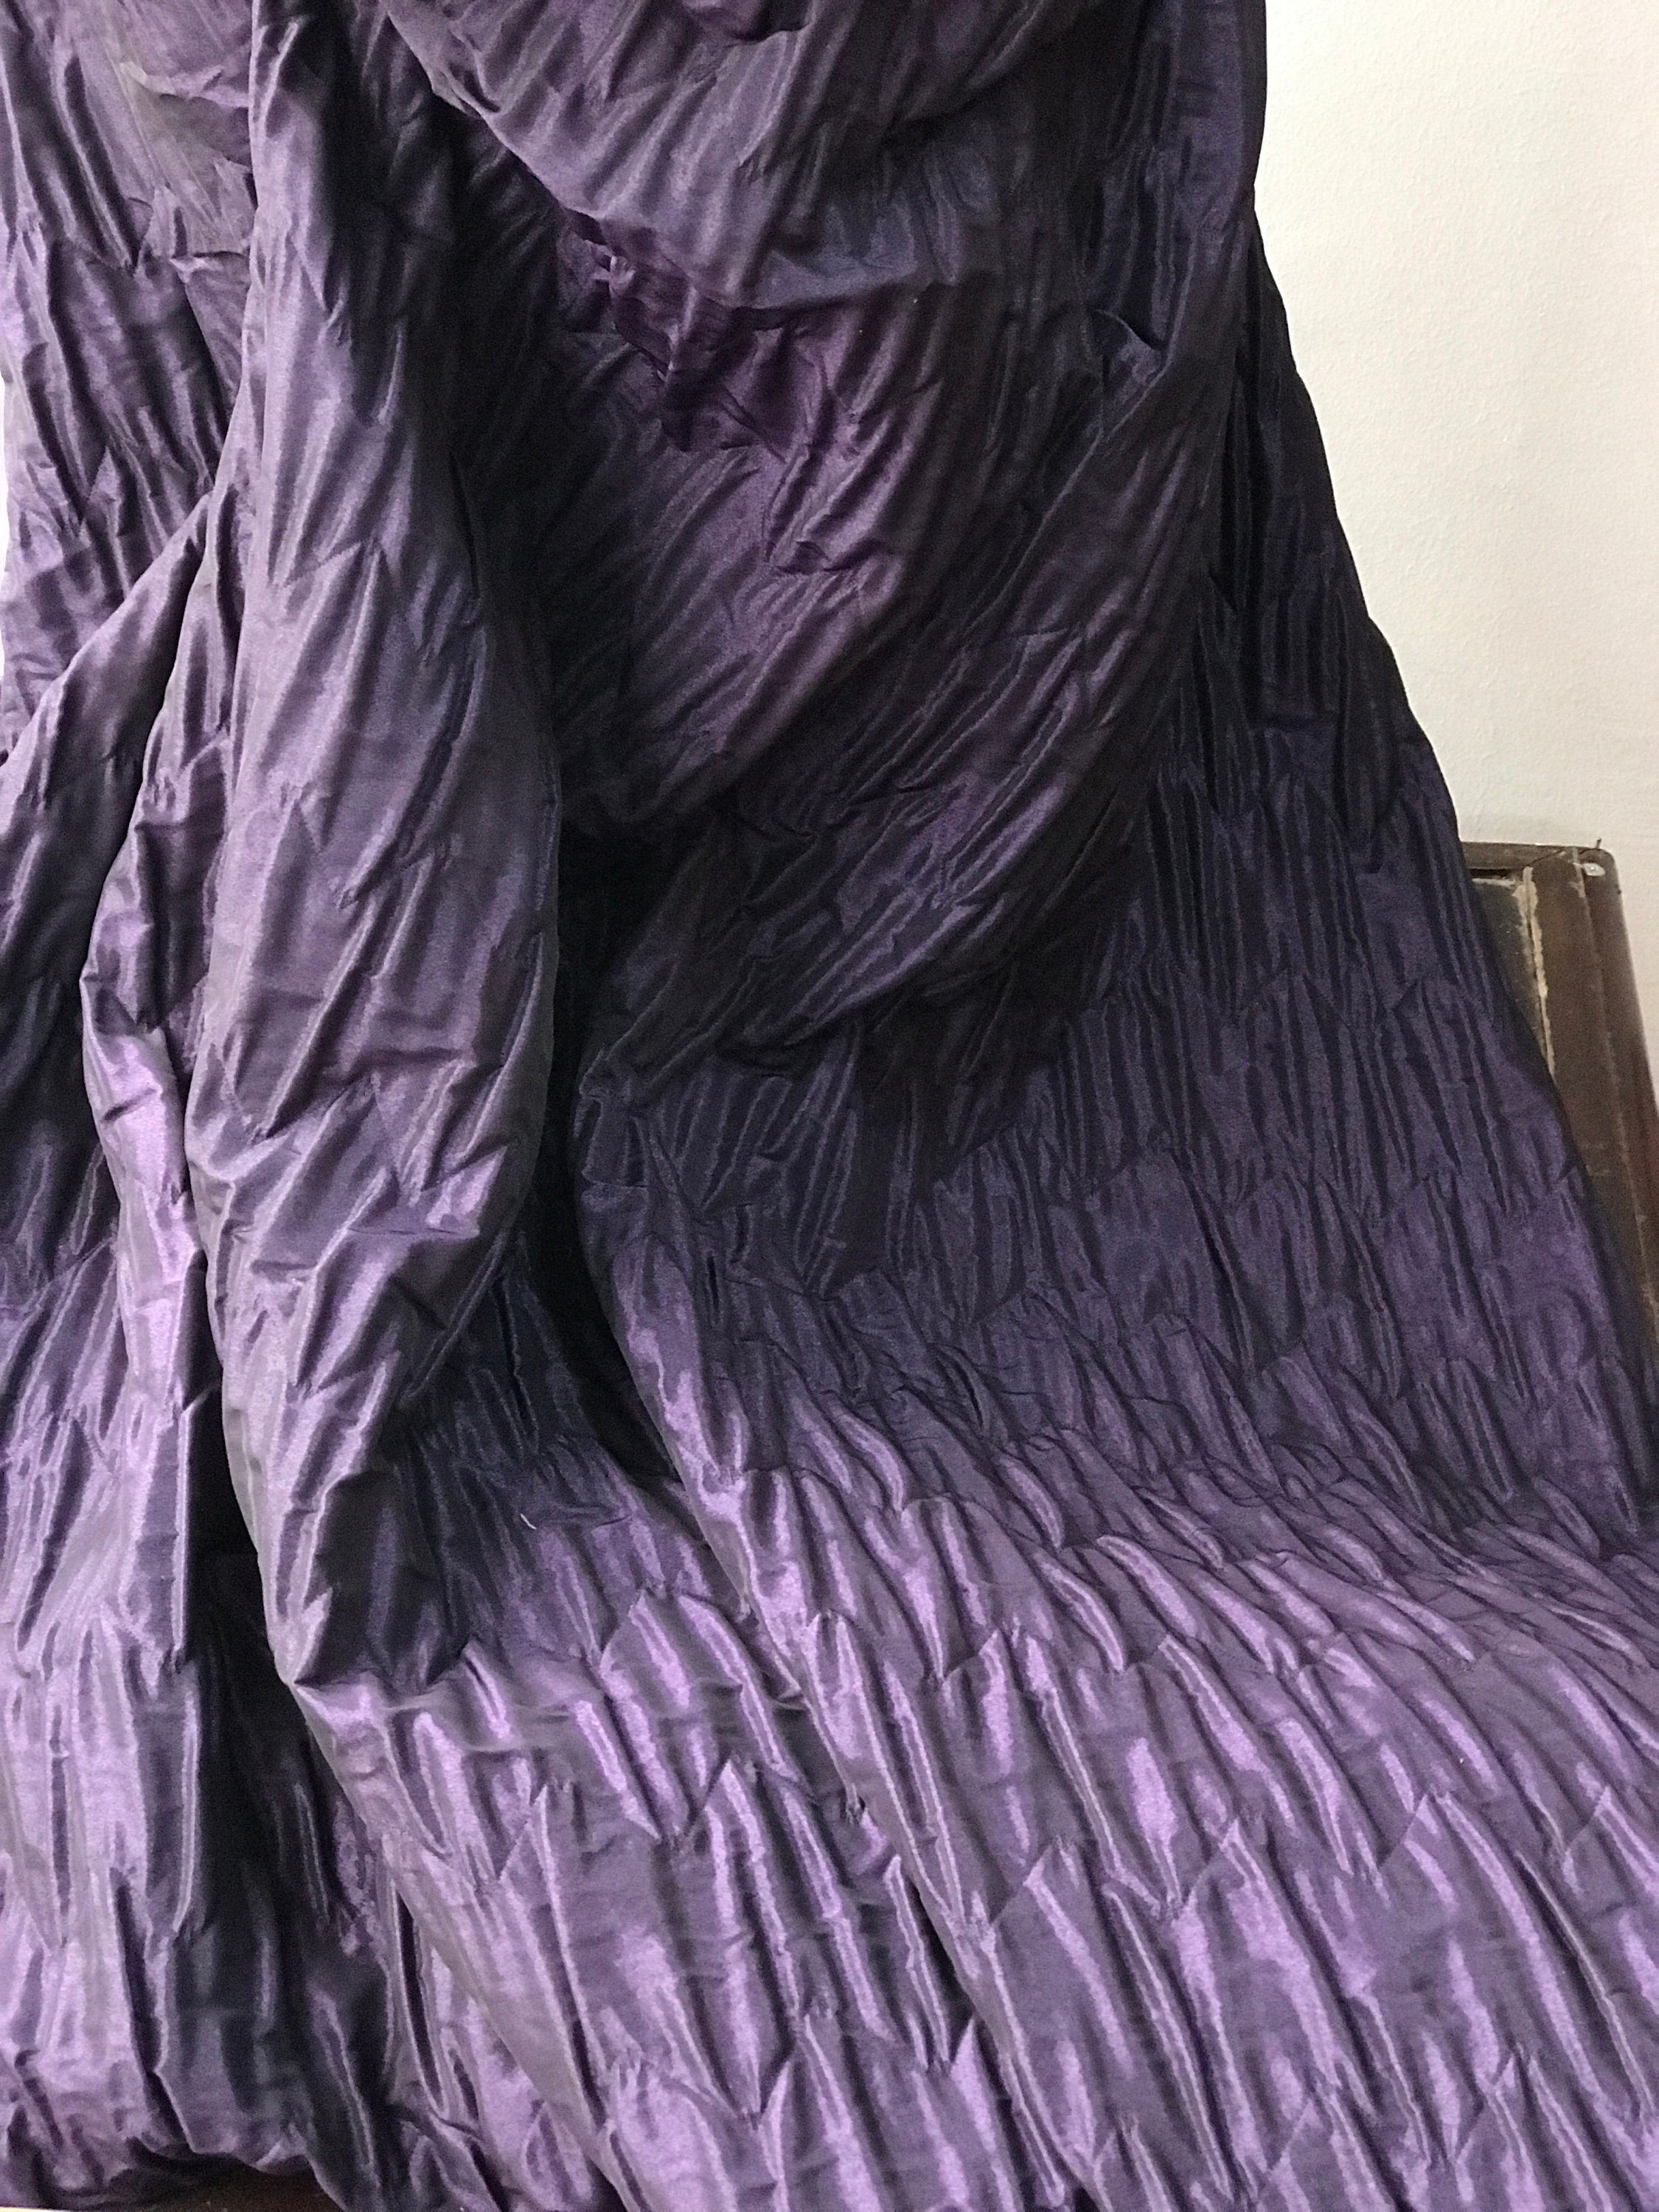 ruched taffeta fabric with backing, brocade, royal purple, black, anthracite, bridal, premium quality 140cm wide